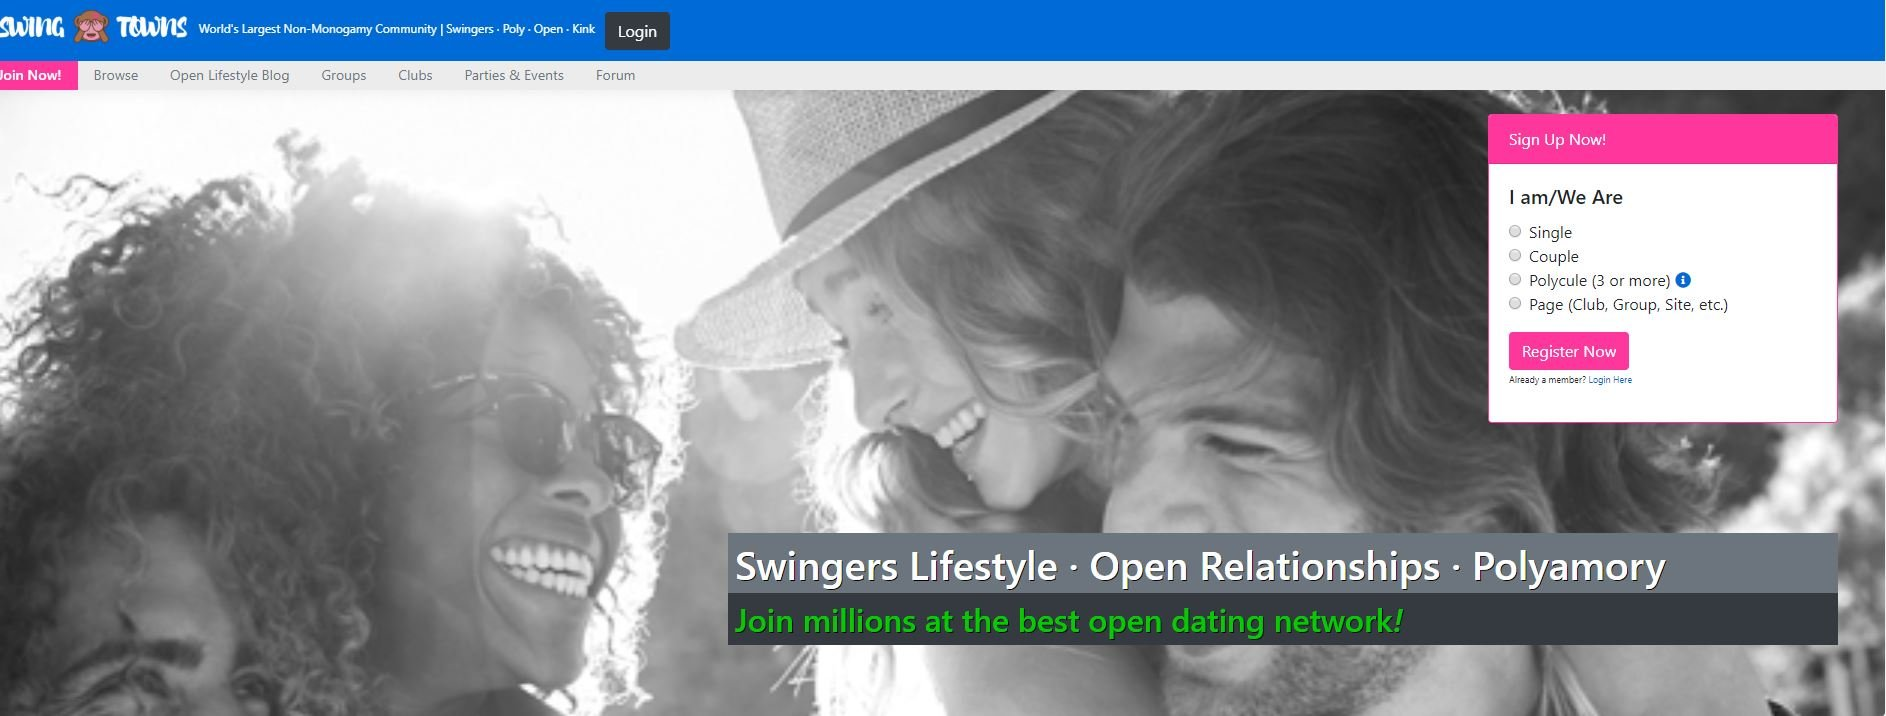 Top Advantages Offered By Swinger Sites